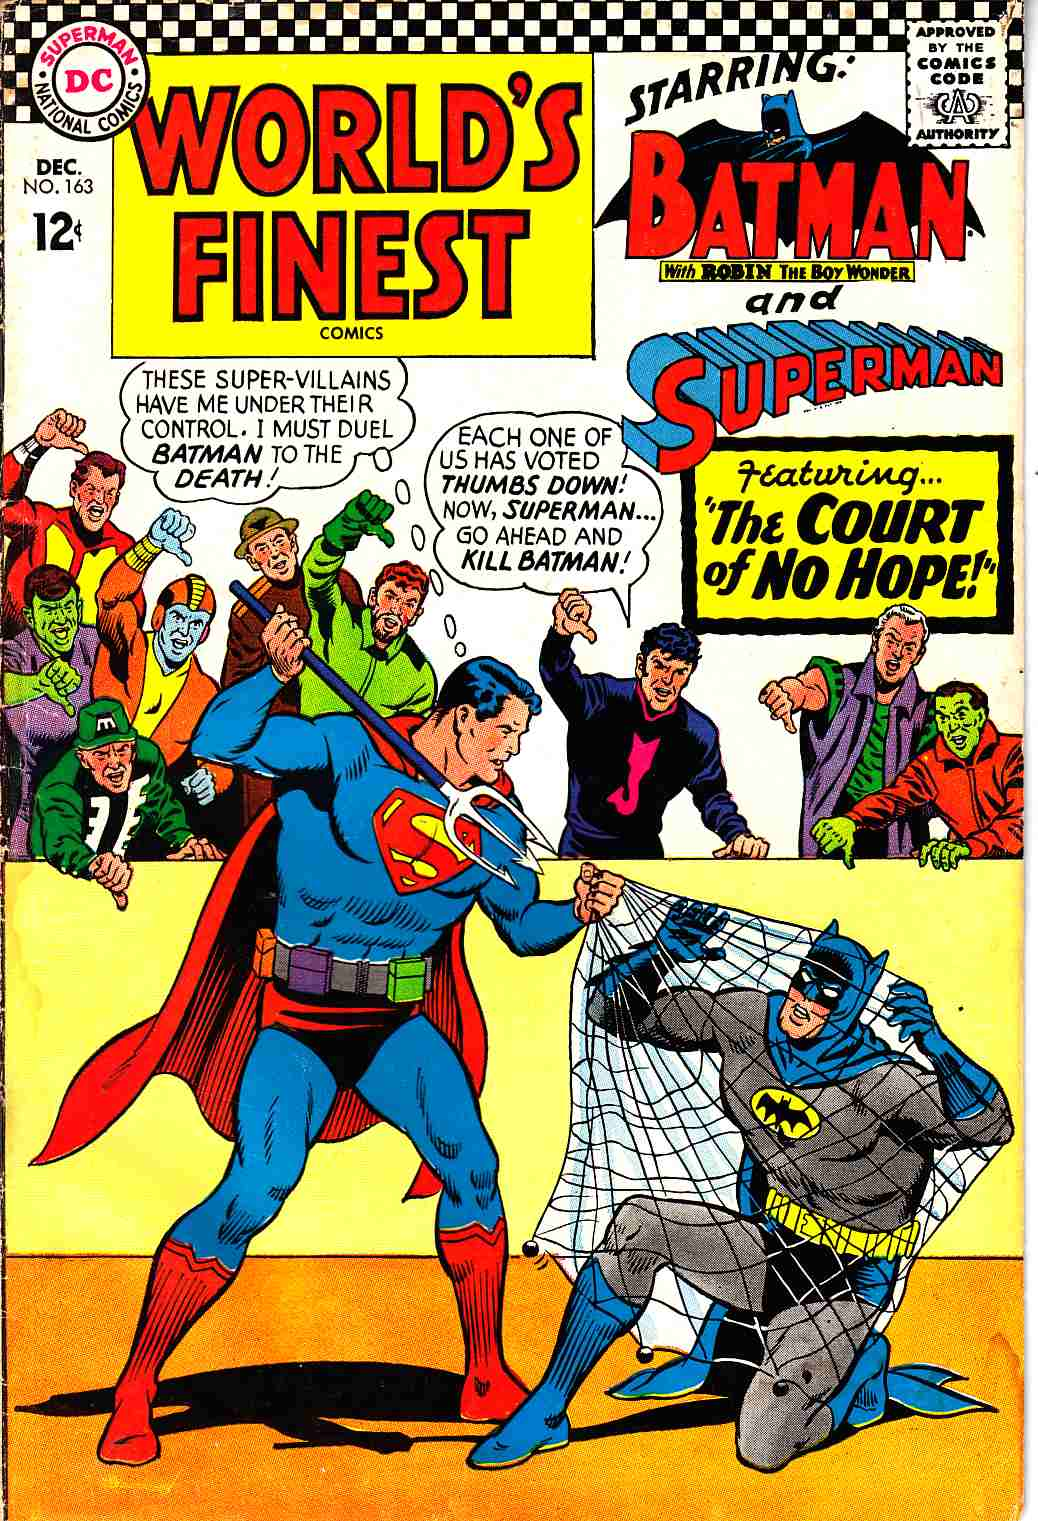 Worlds Finest #163 Fair (1.0) [DC Comic] THUMBNAIL